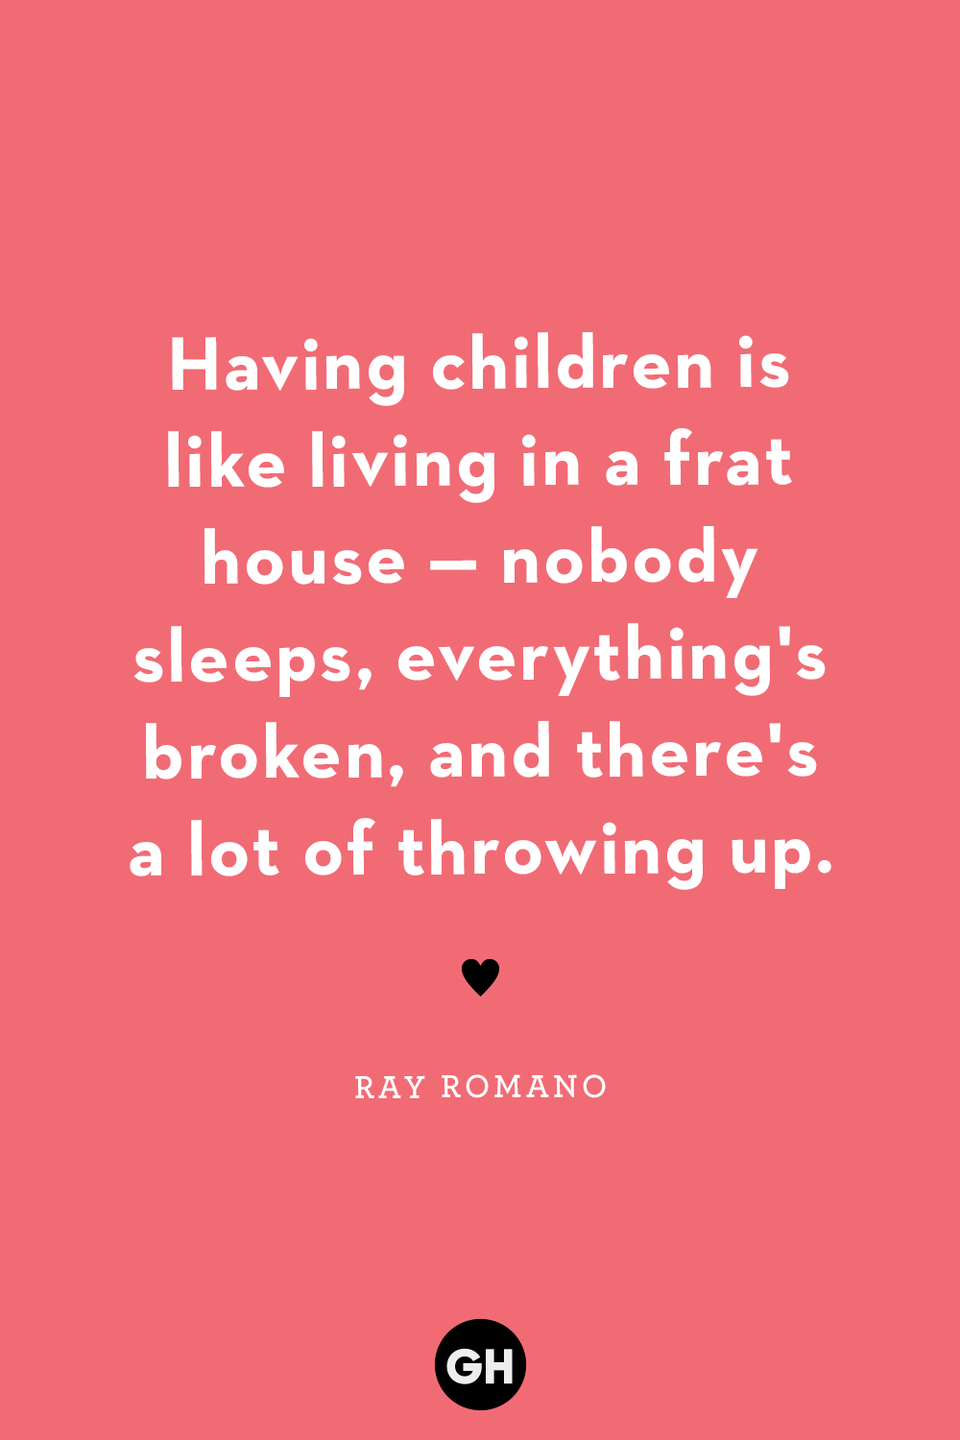 <p>Having children is like living in a frat house — nobody sleeps, everything's broken and there's a lot of throwing up.</p>